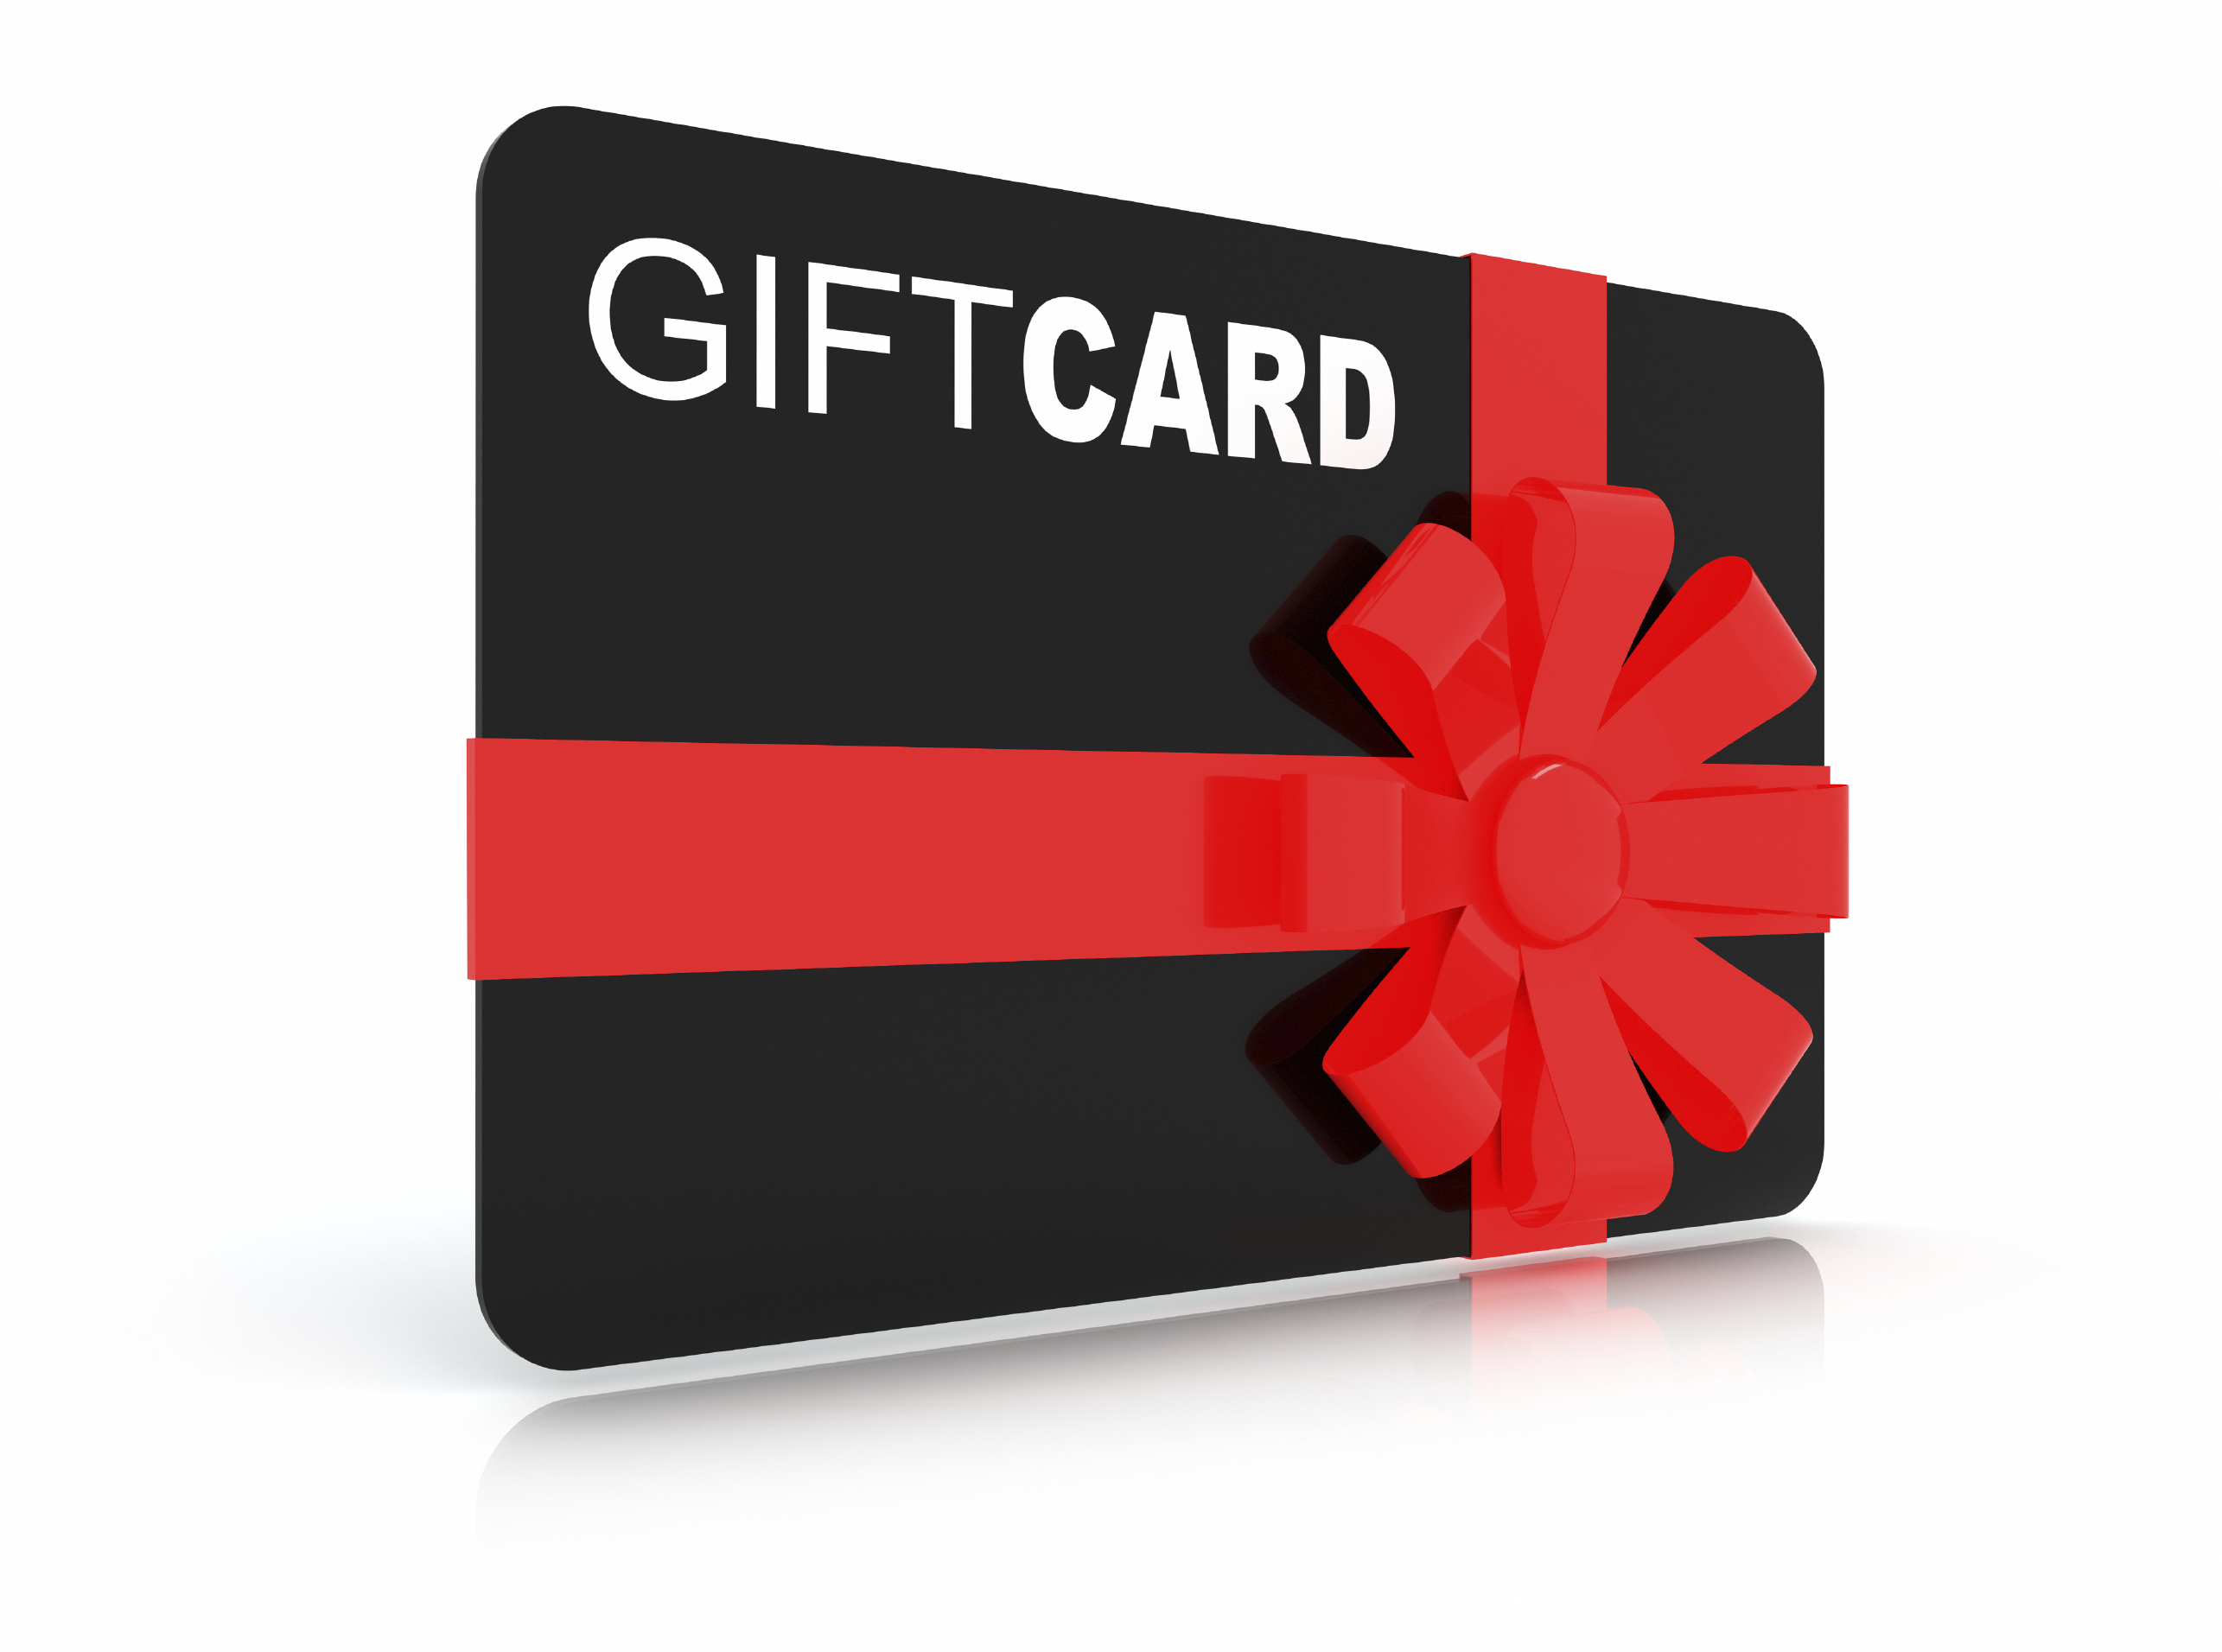 Gift clipart gift card. Mtac midwest threat